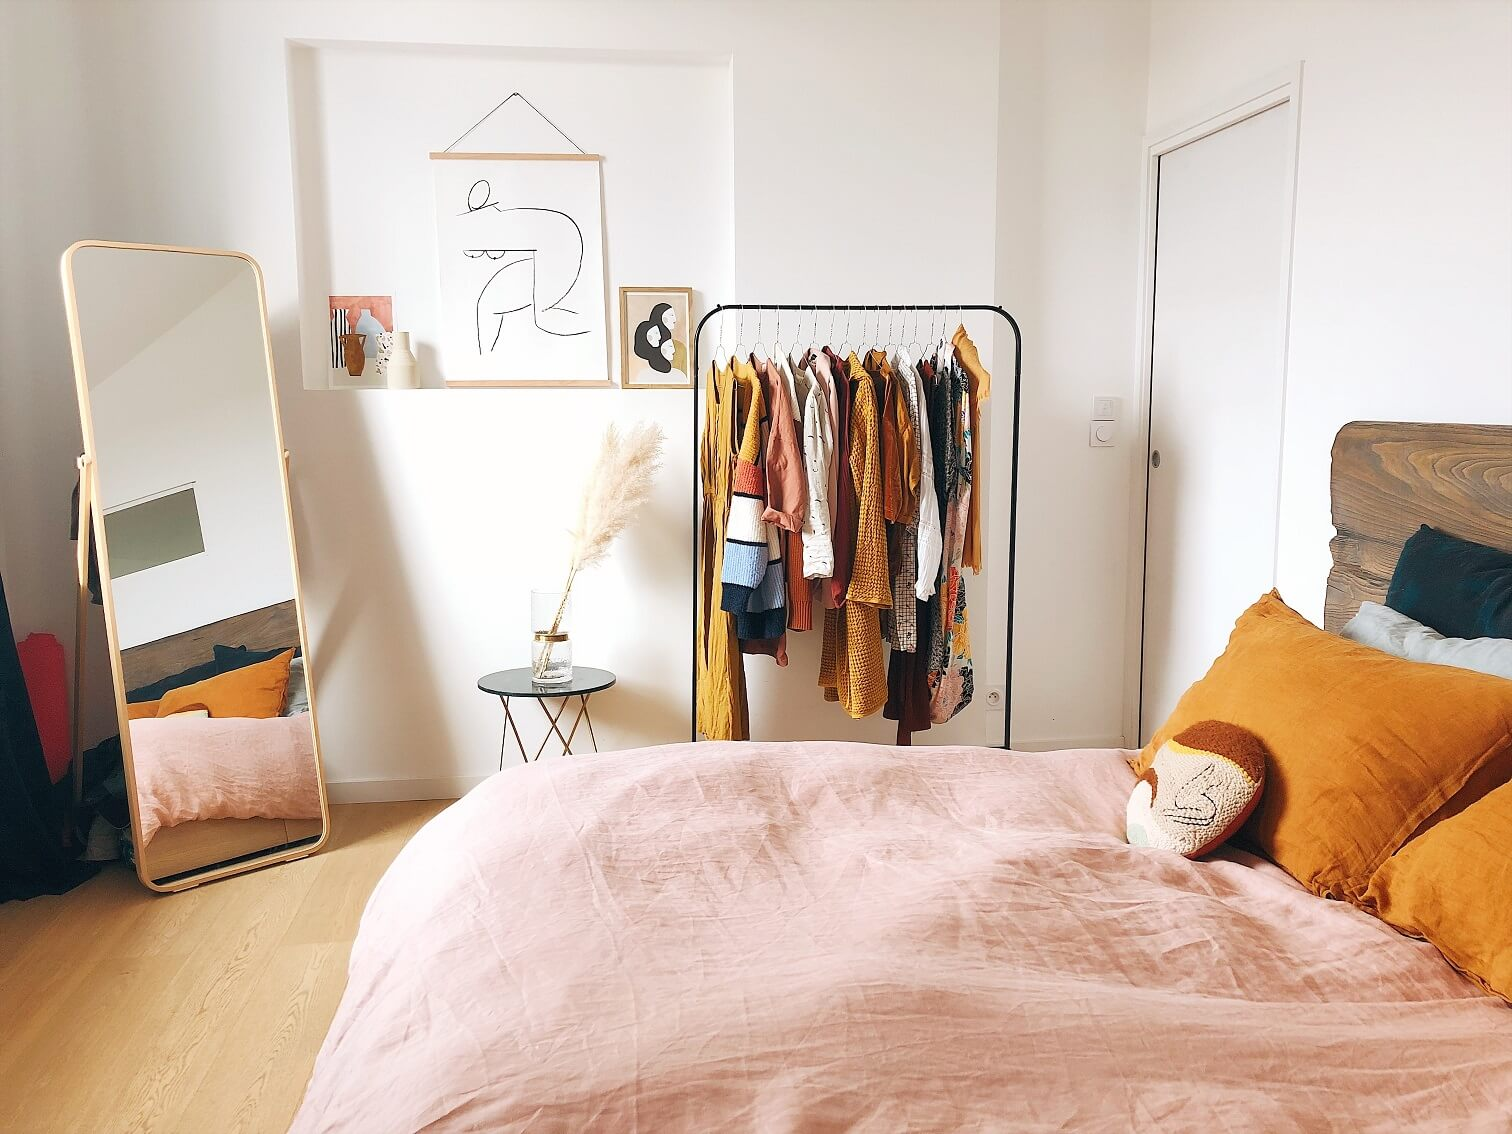 Spring Cleaning Wardrobe Guide - Orderly Bedroom - Chuchka Blog